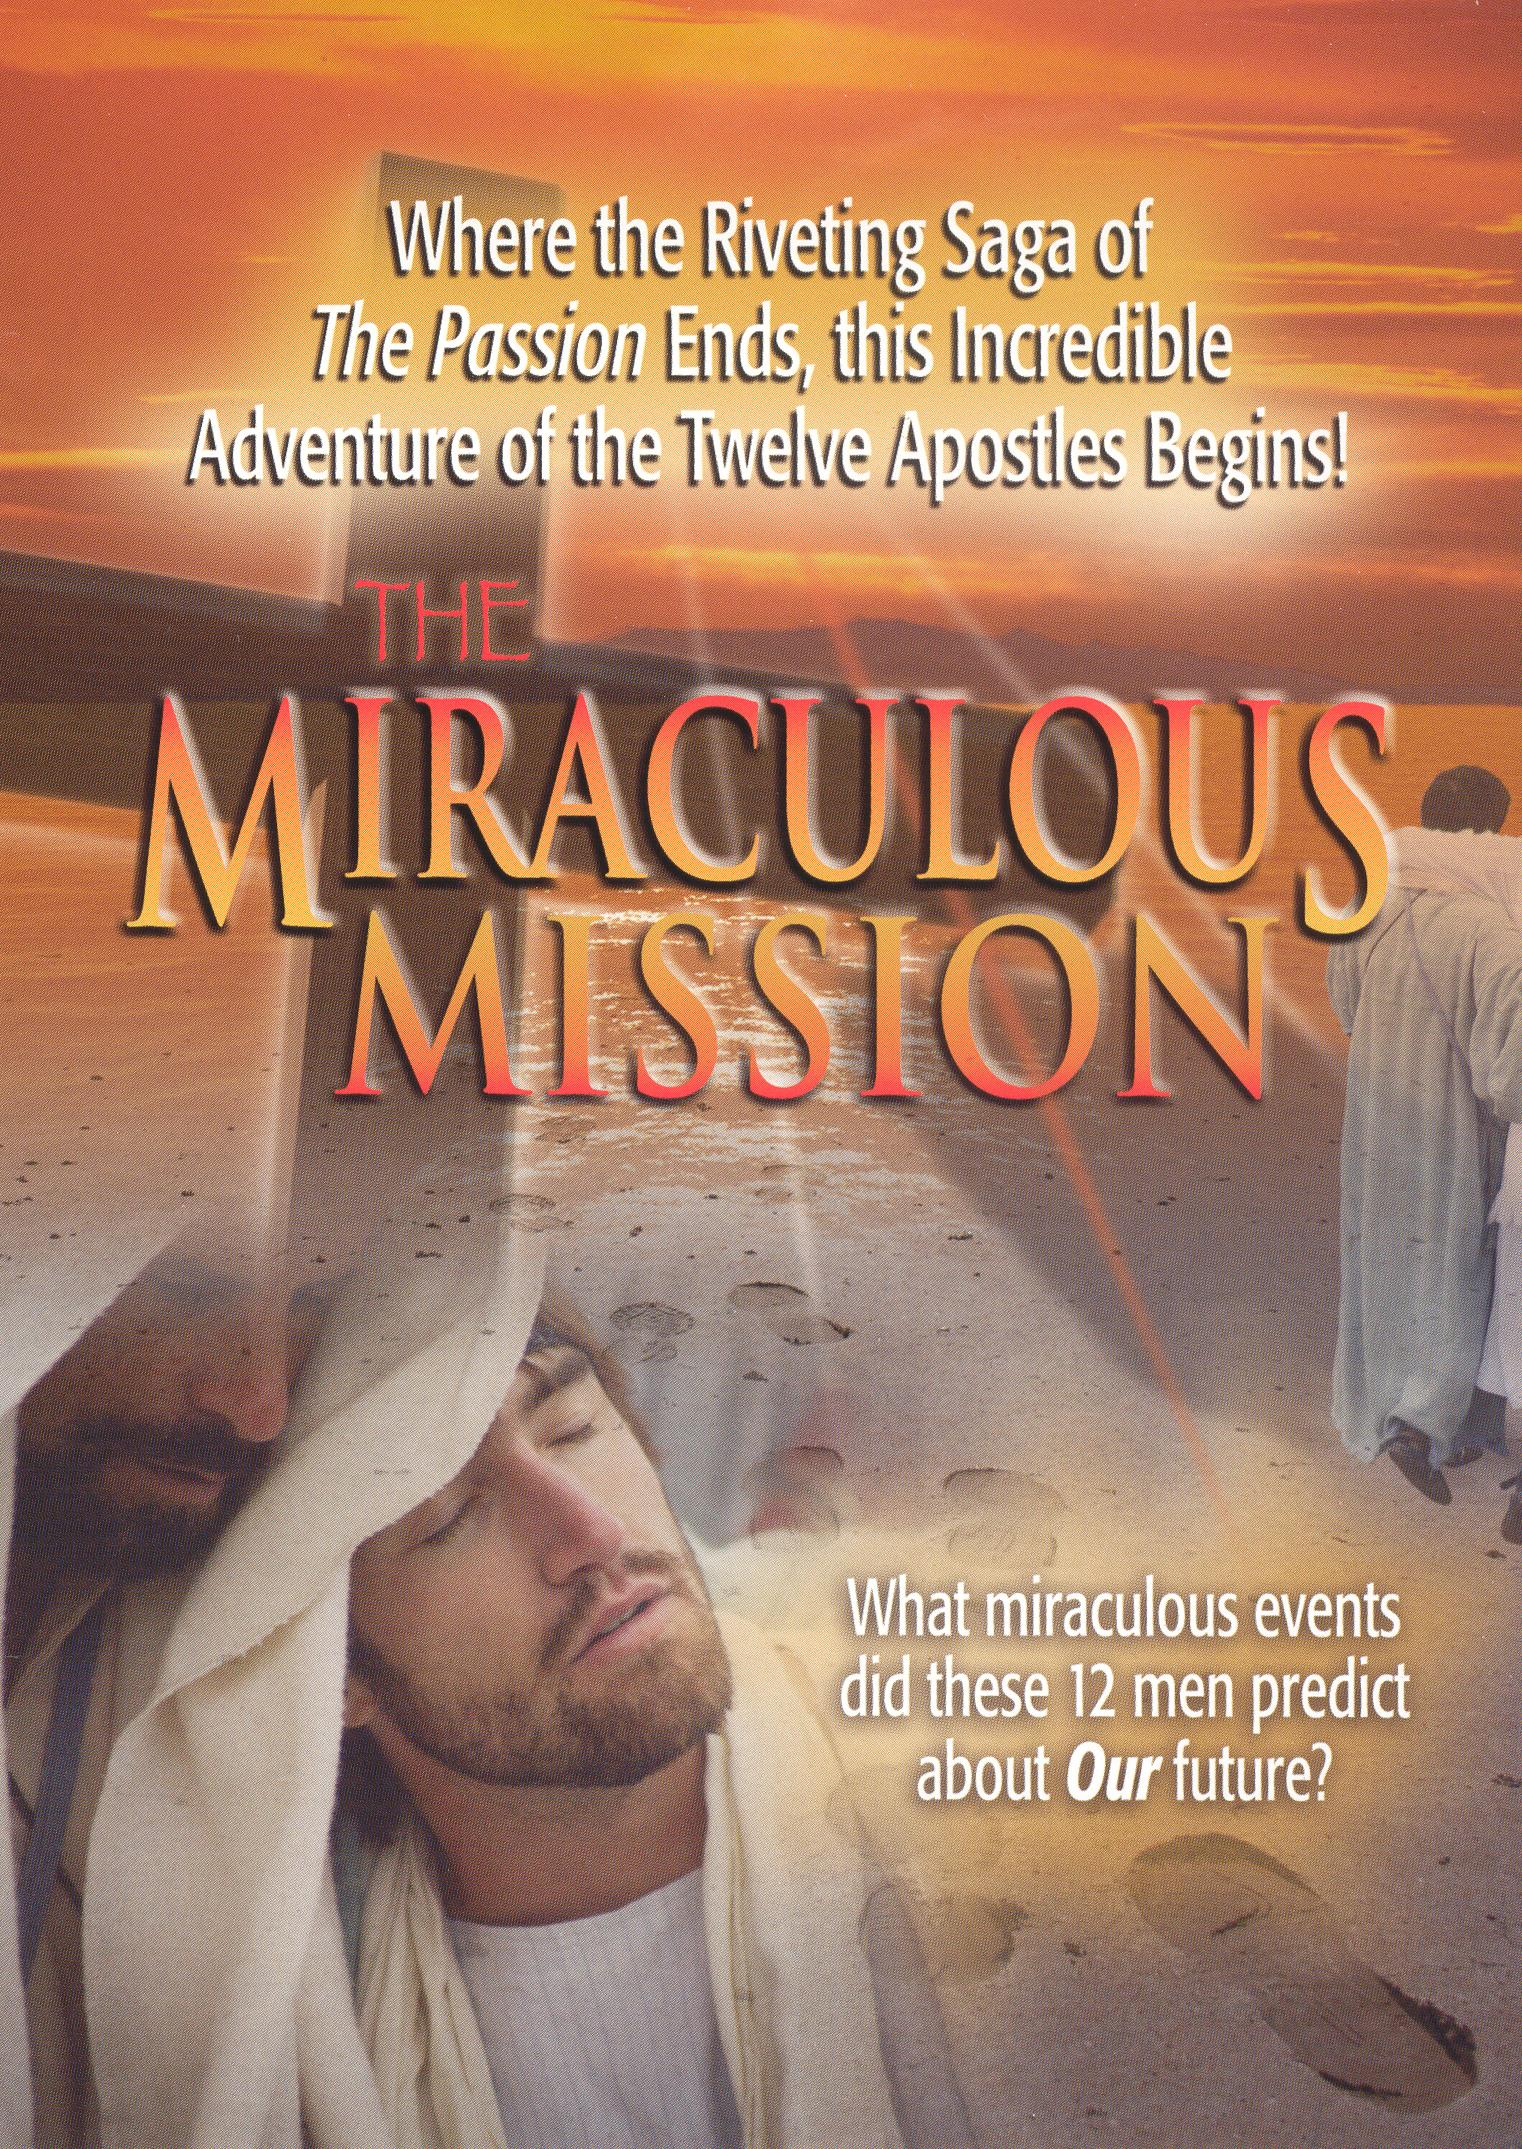 The Miraculous Mission